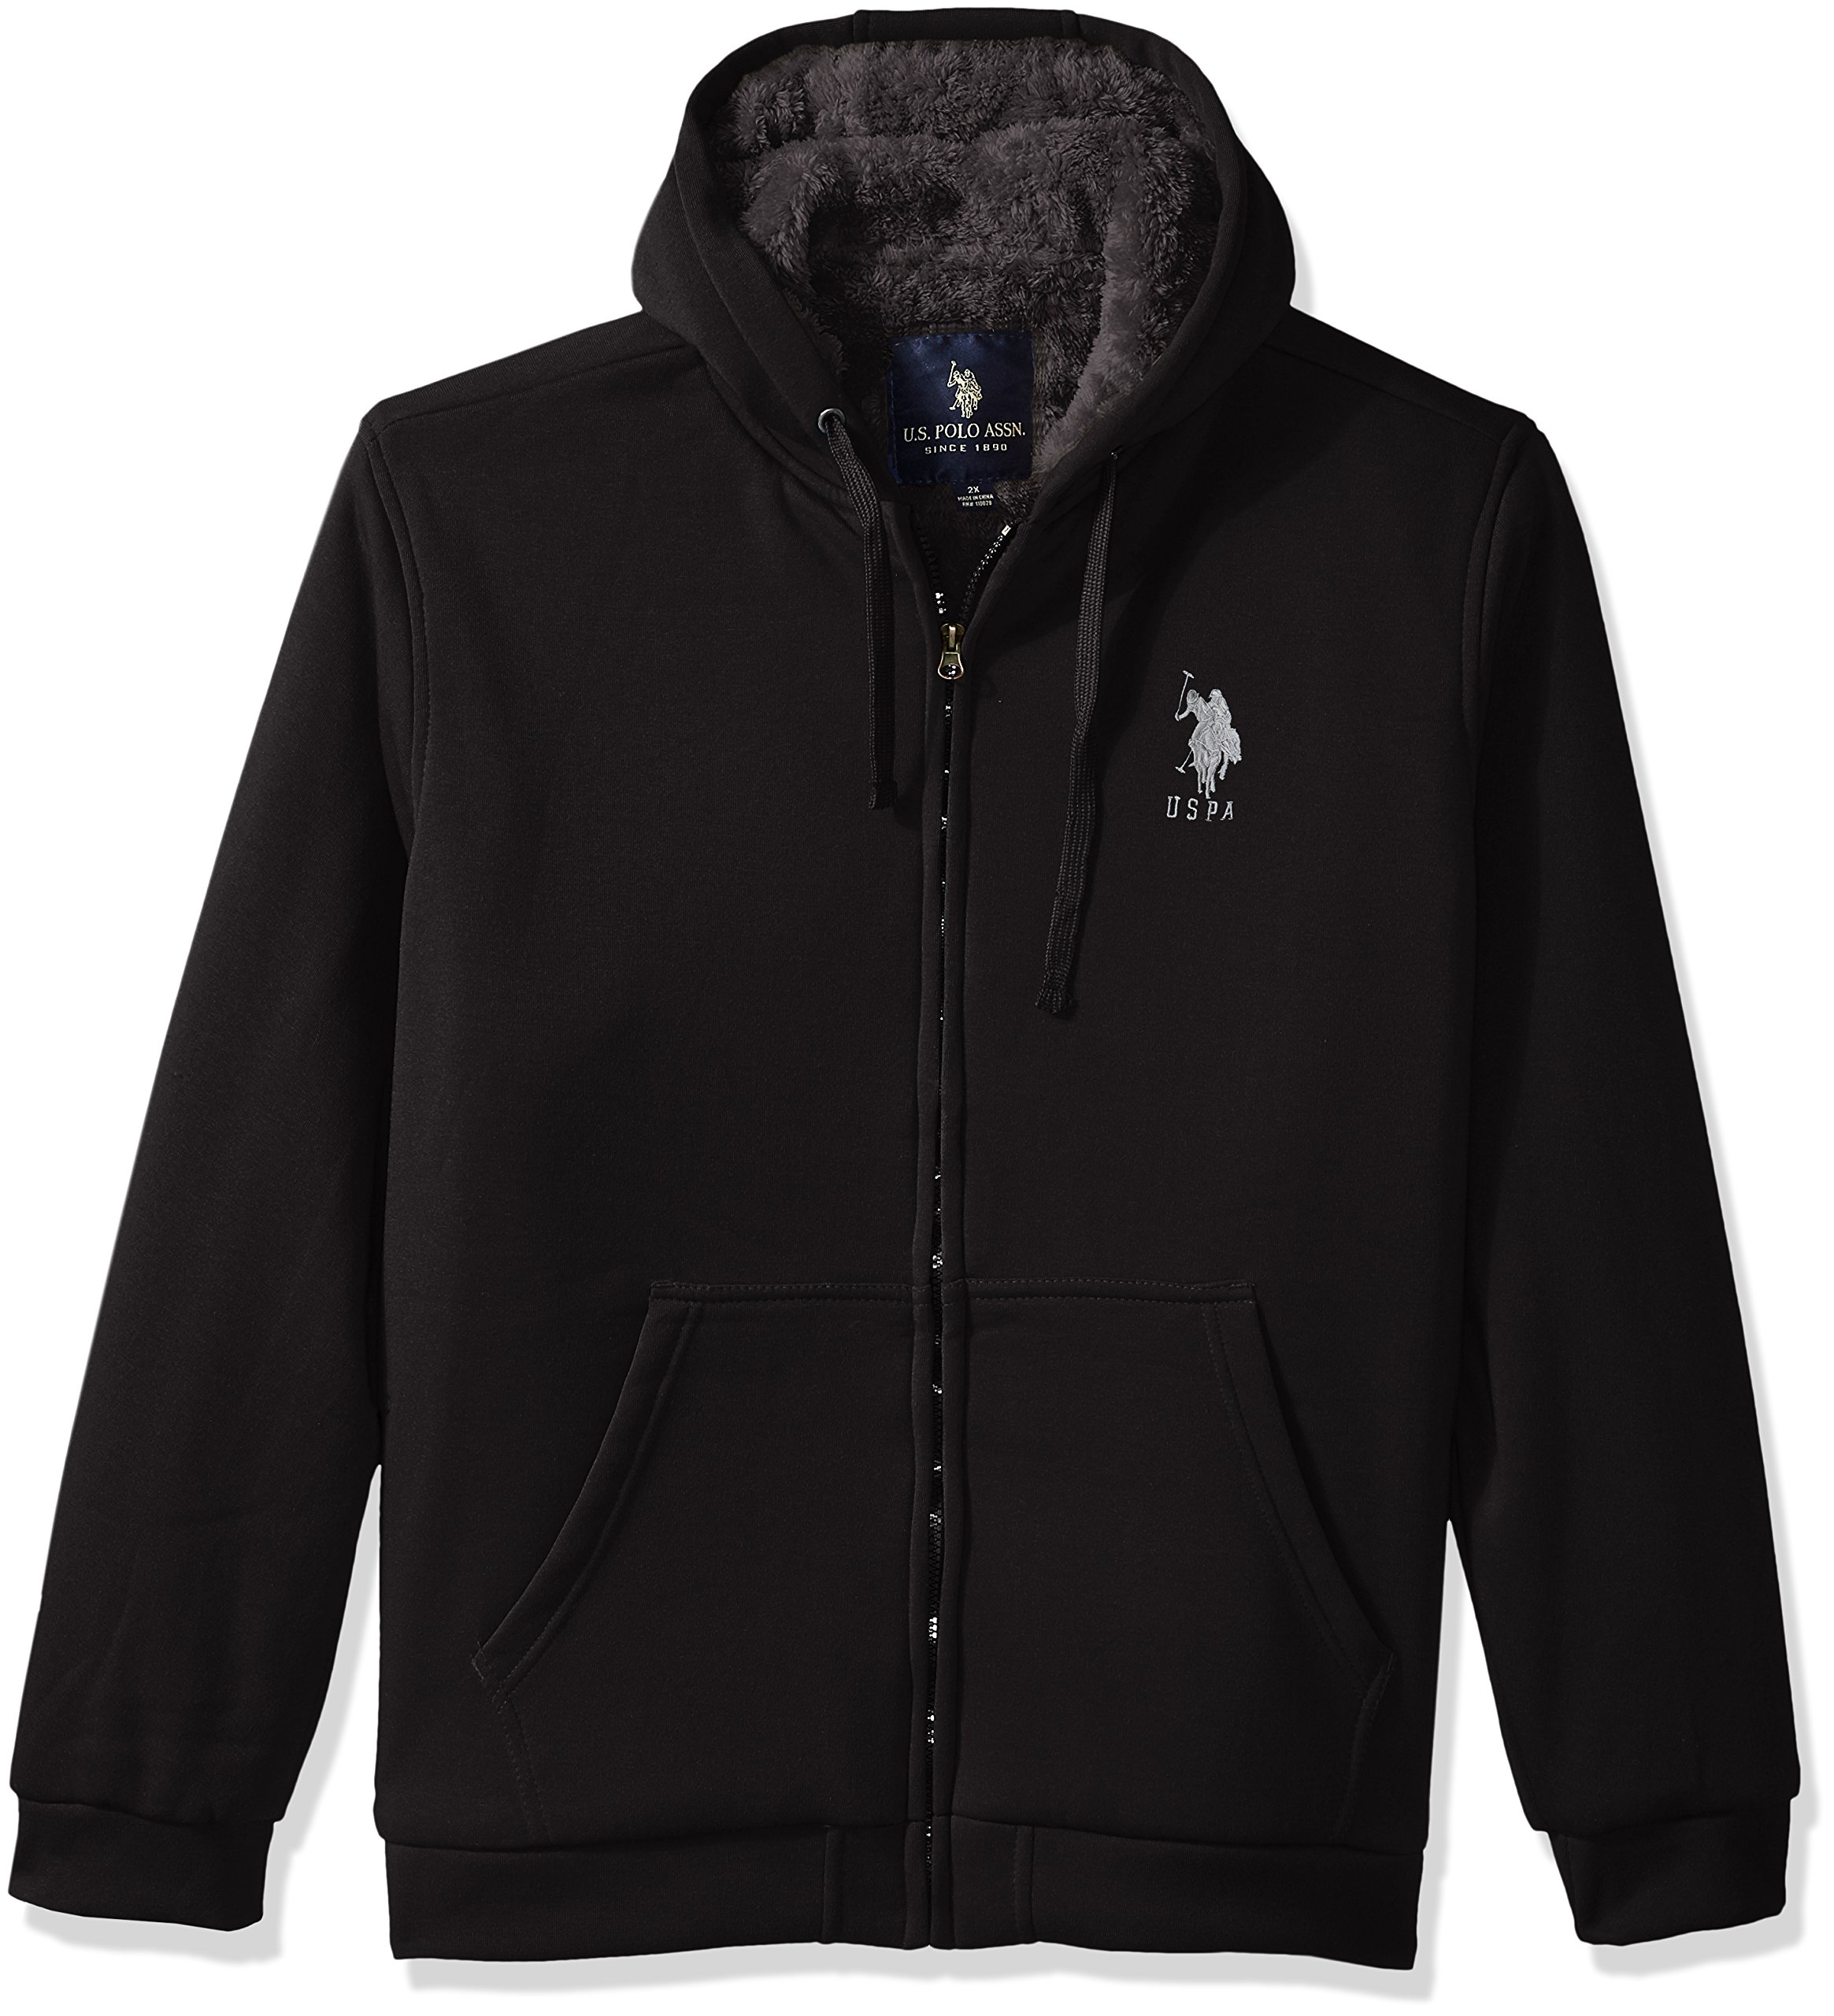 U.S. Polo Assn.. Mens Standard Sherpa Lined Fleece Hoodie, Black 5516, 3X by U.S. Polo Assn.